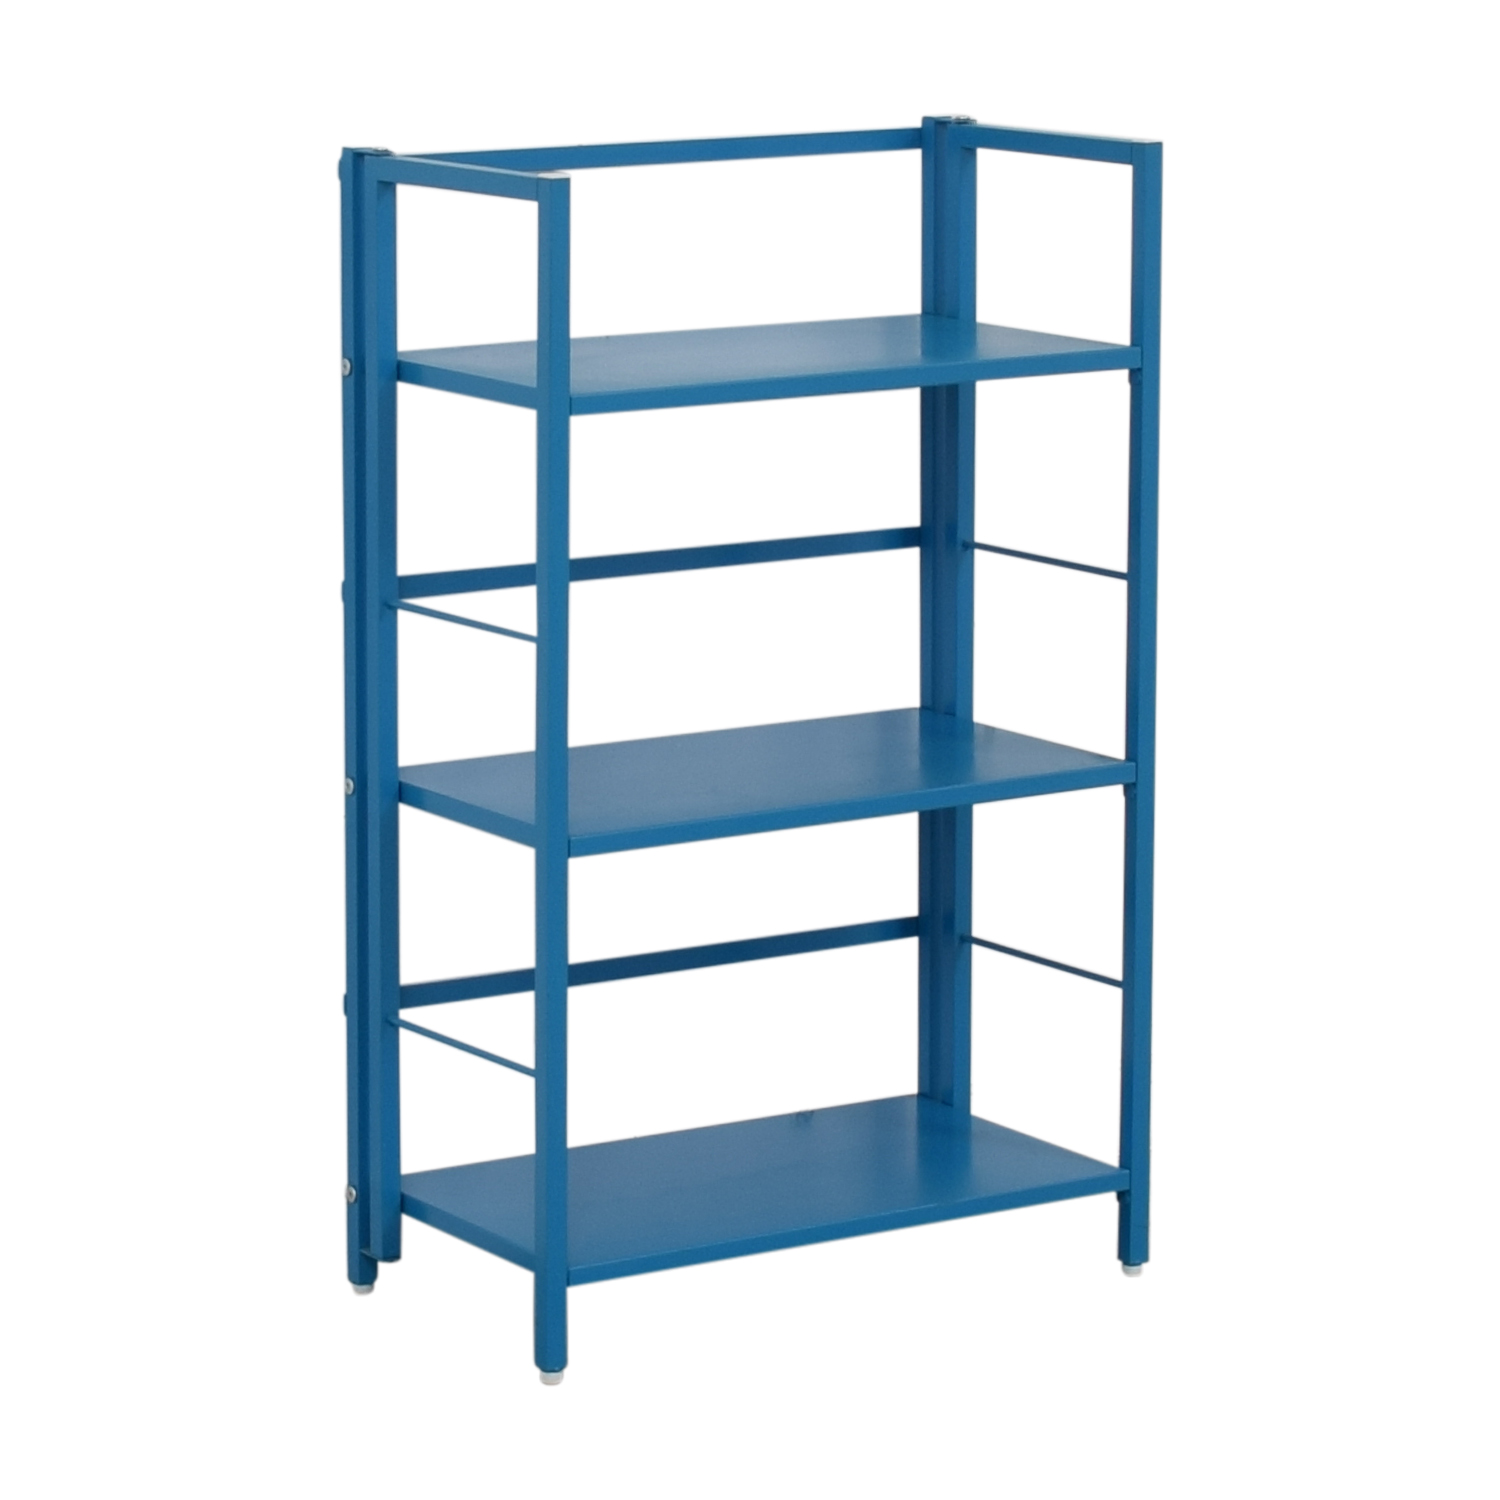 63 Off Crate Barrel Crate Barrel Pop Up Blue Folding Three Shelf Bookcase Storage